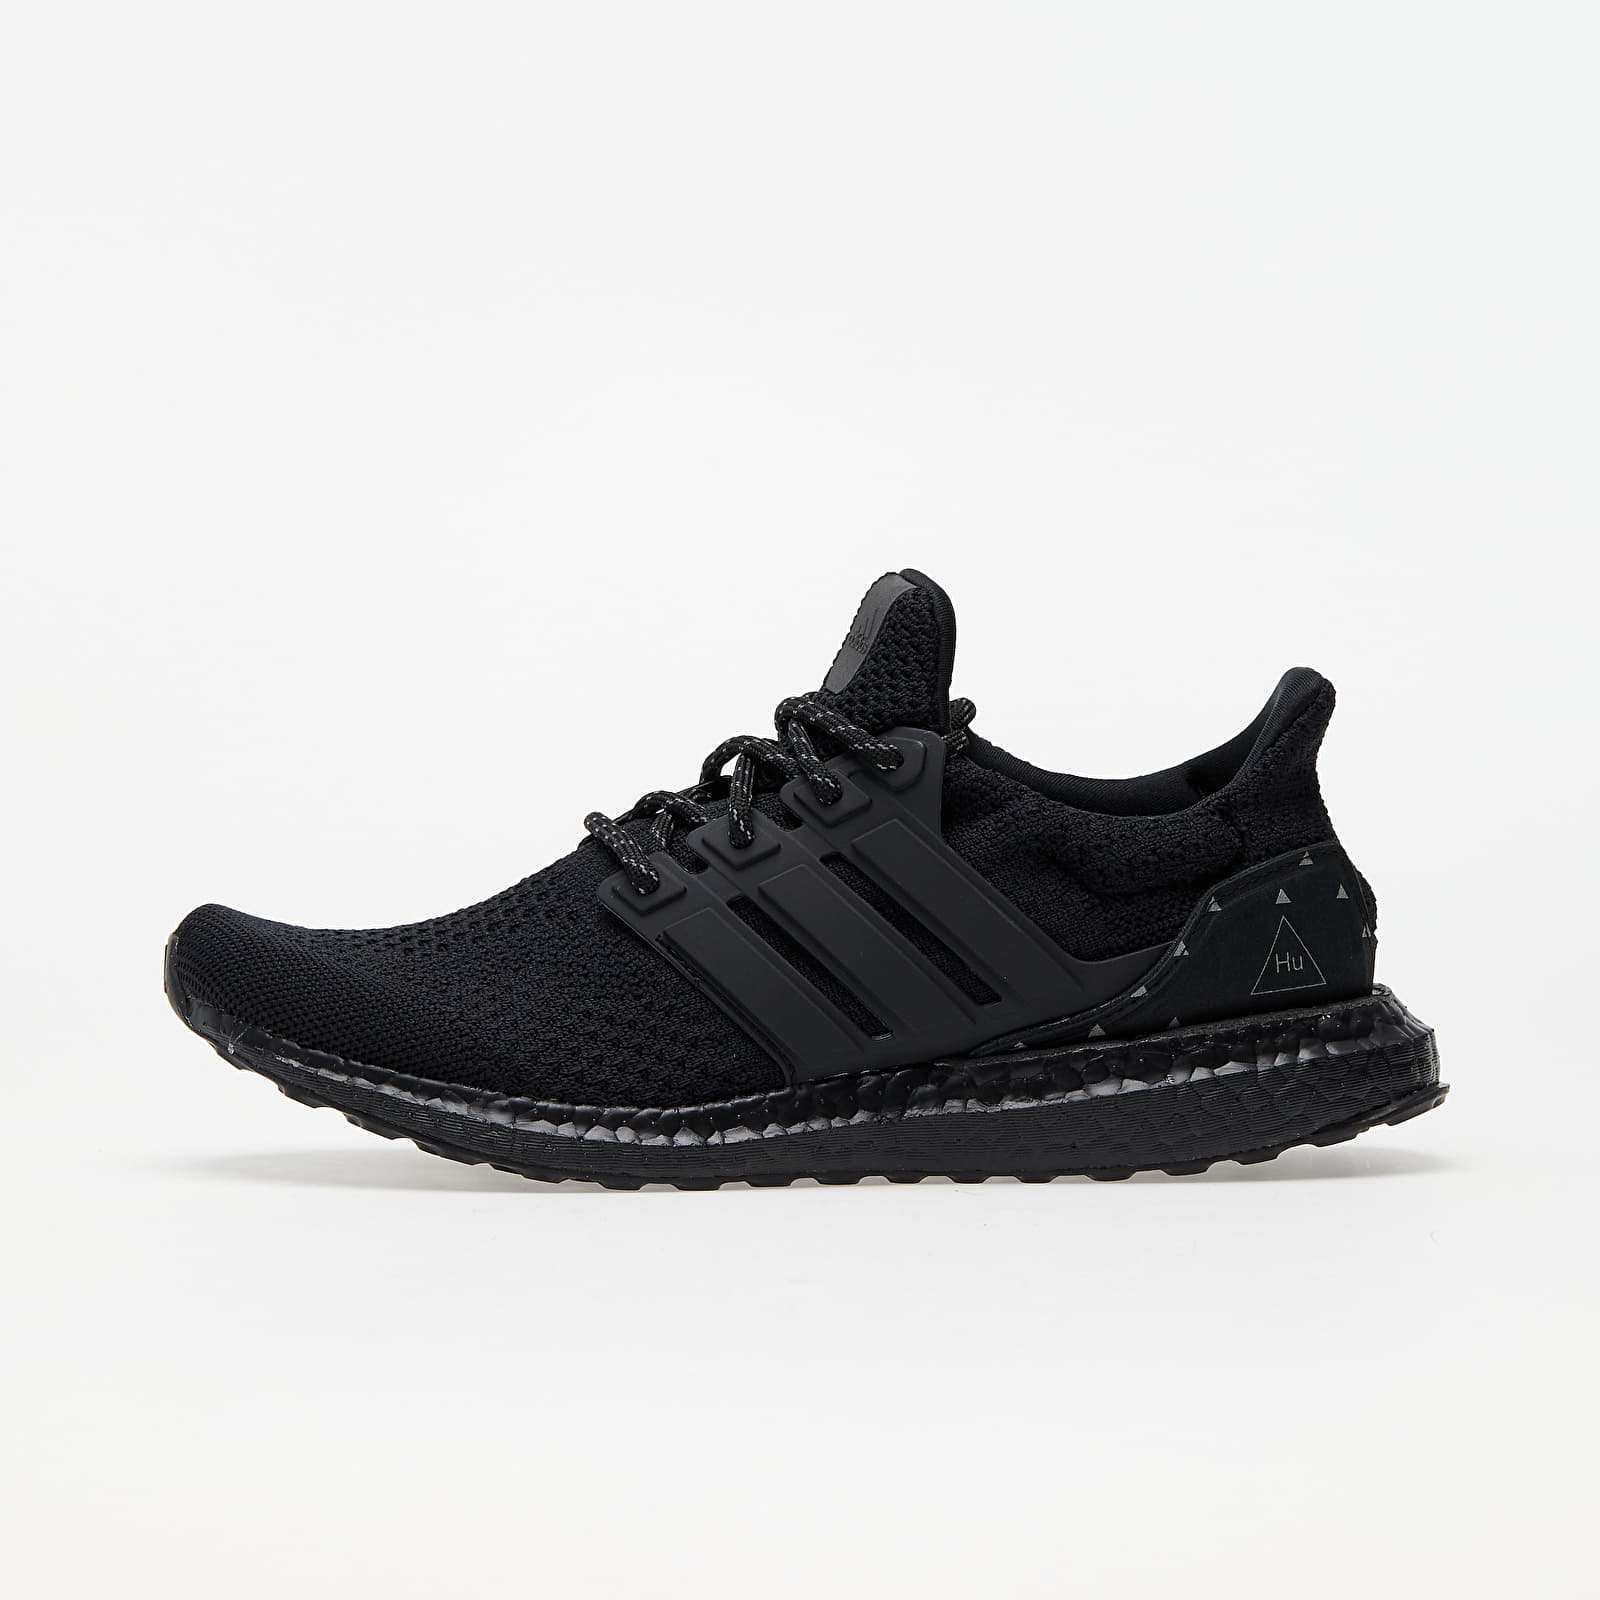 Buty męskie adidas x Pharrell Williams UltraBOOST DNA Core Black/ Core Black/ Core Black